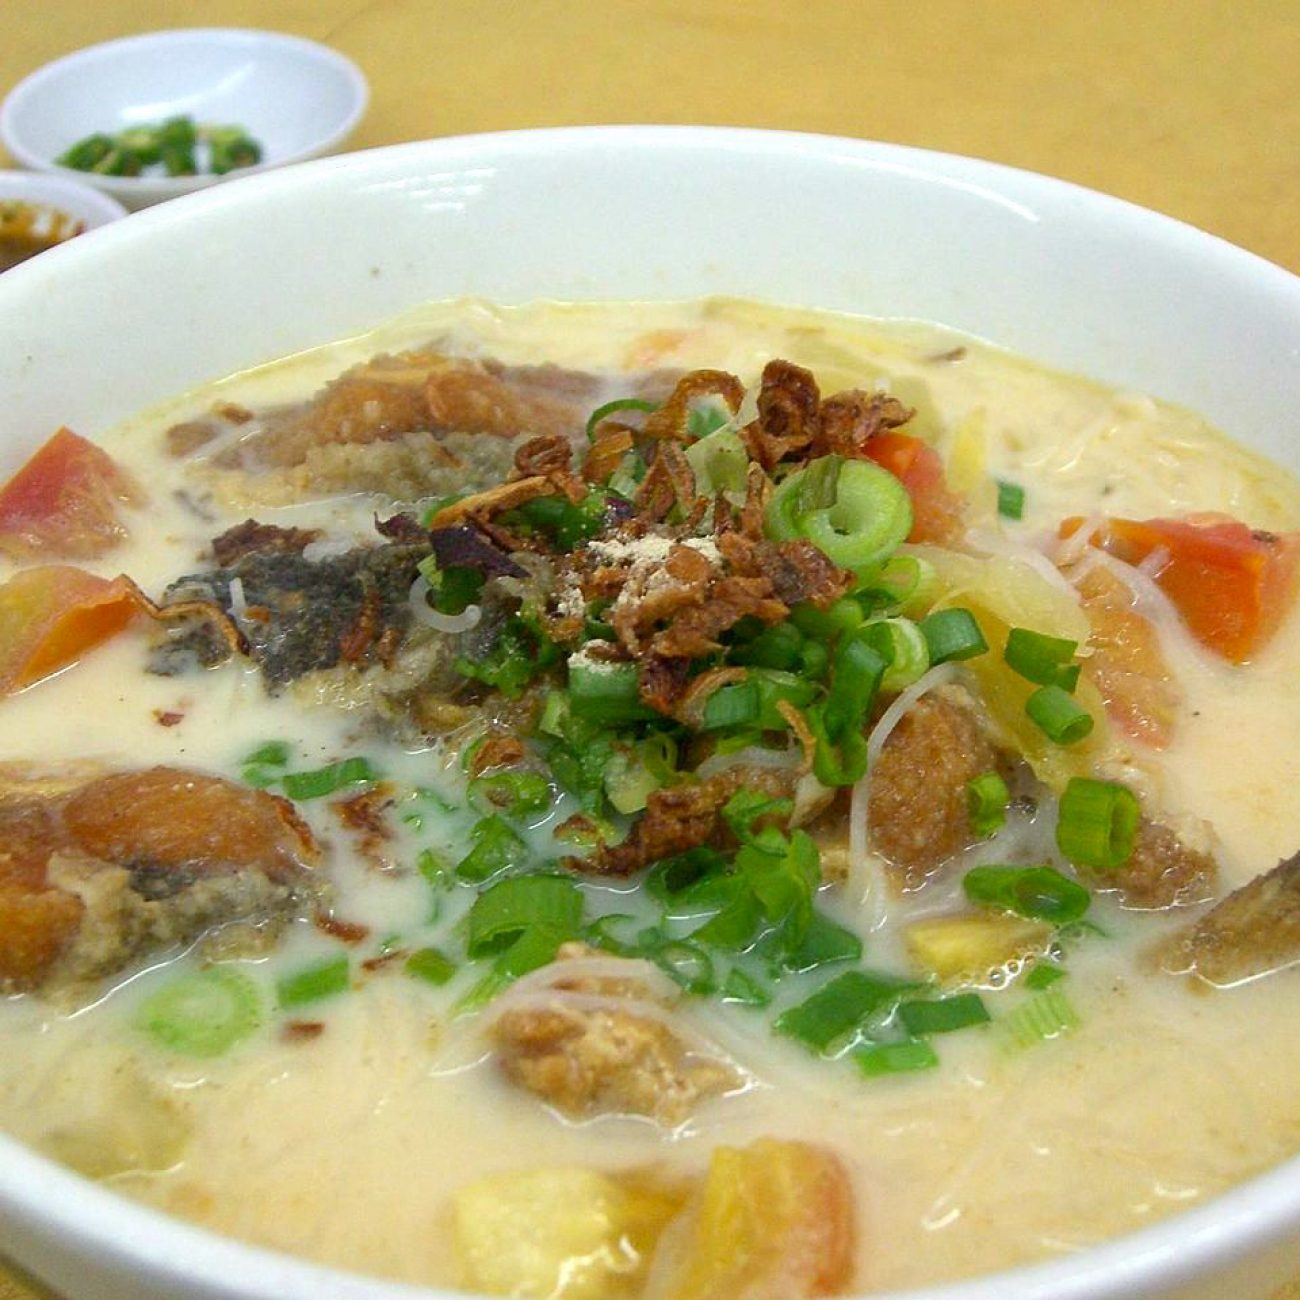 Fish Head Noodle (鱼头米粉)